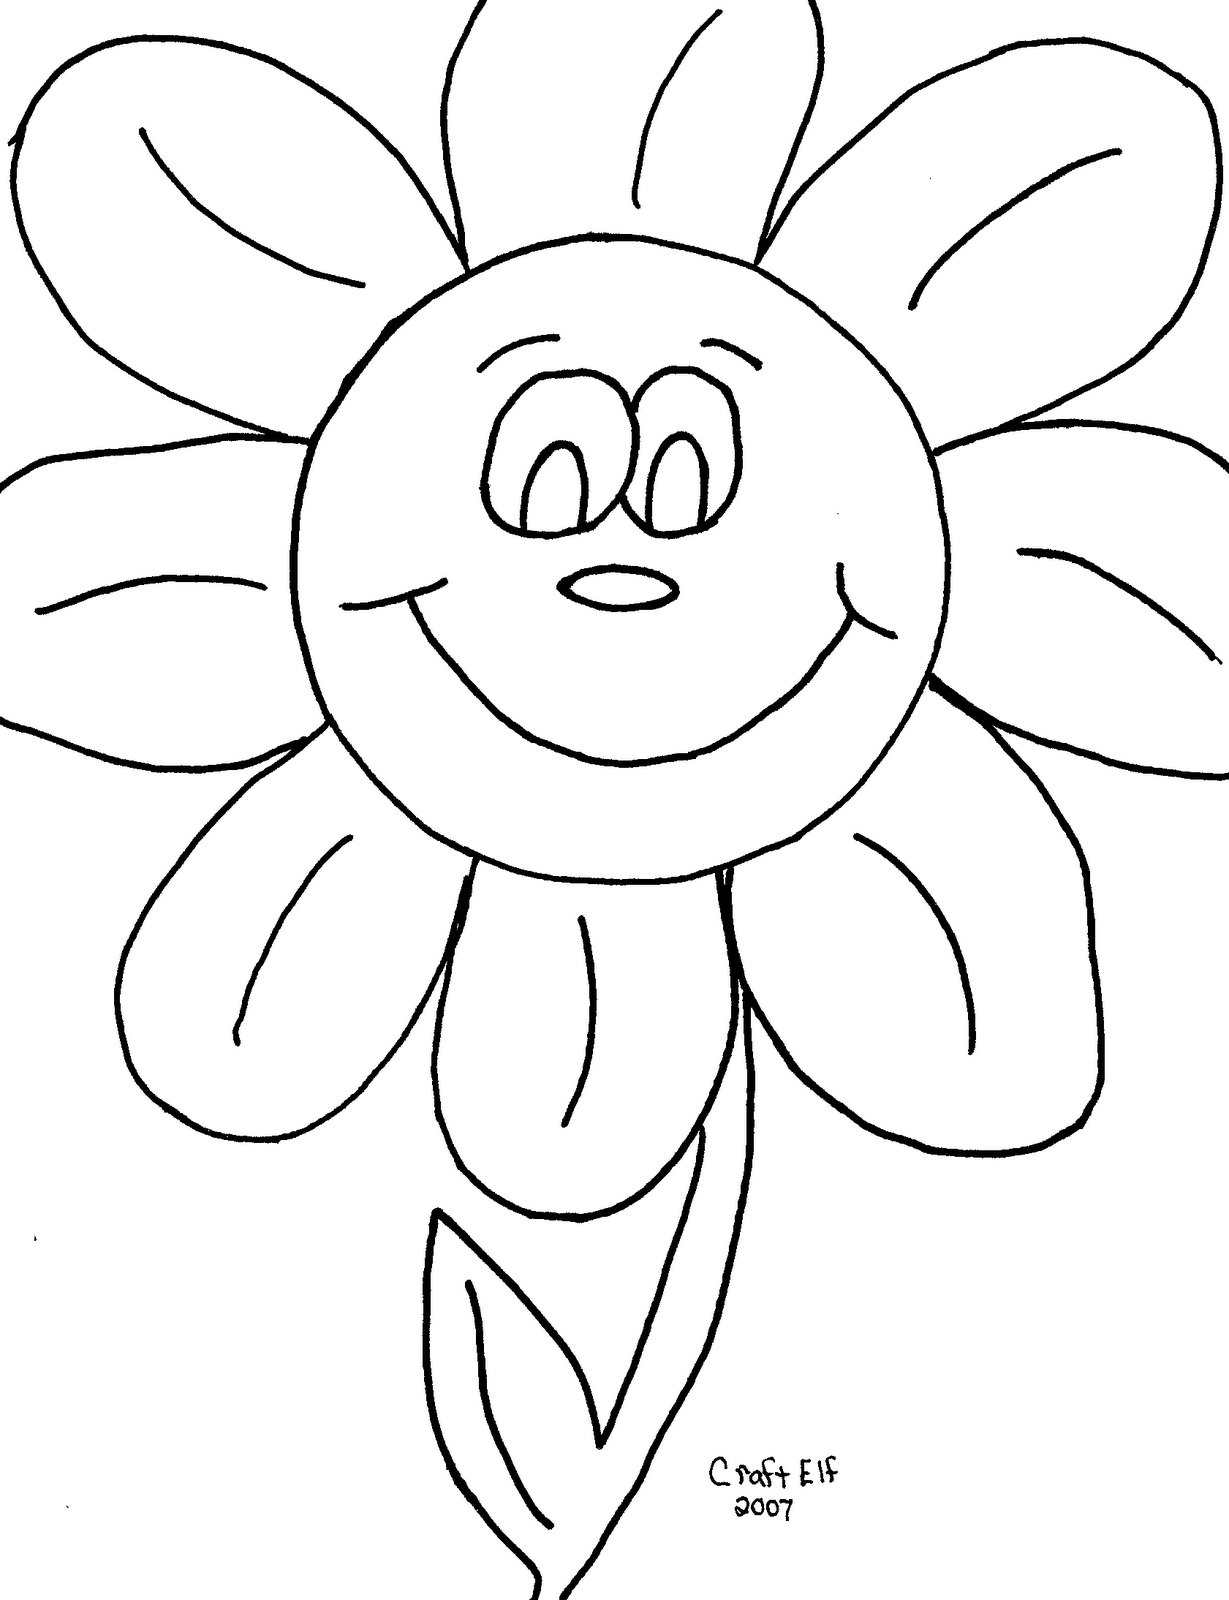 Coloring Pages For Pre Kindergarten Coloring Home Free Printable Preschool Co Kindergarten Coloring Pages Kindergarten Coloring Sheets Barbie Coloring Pages